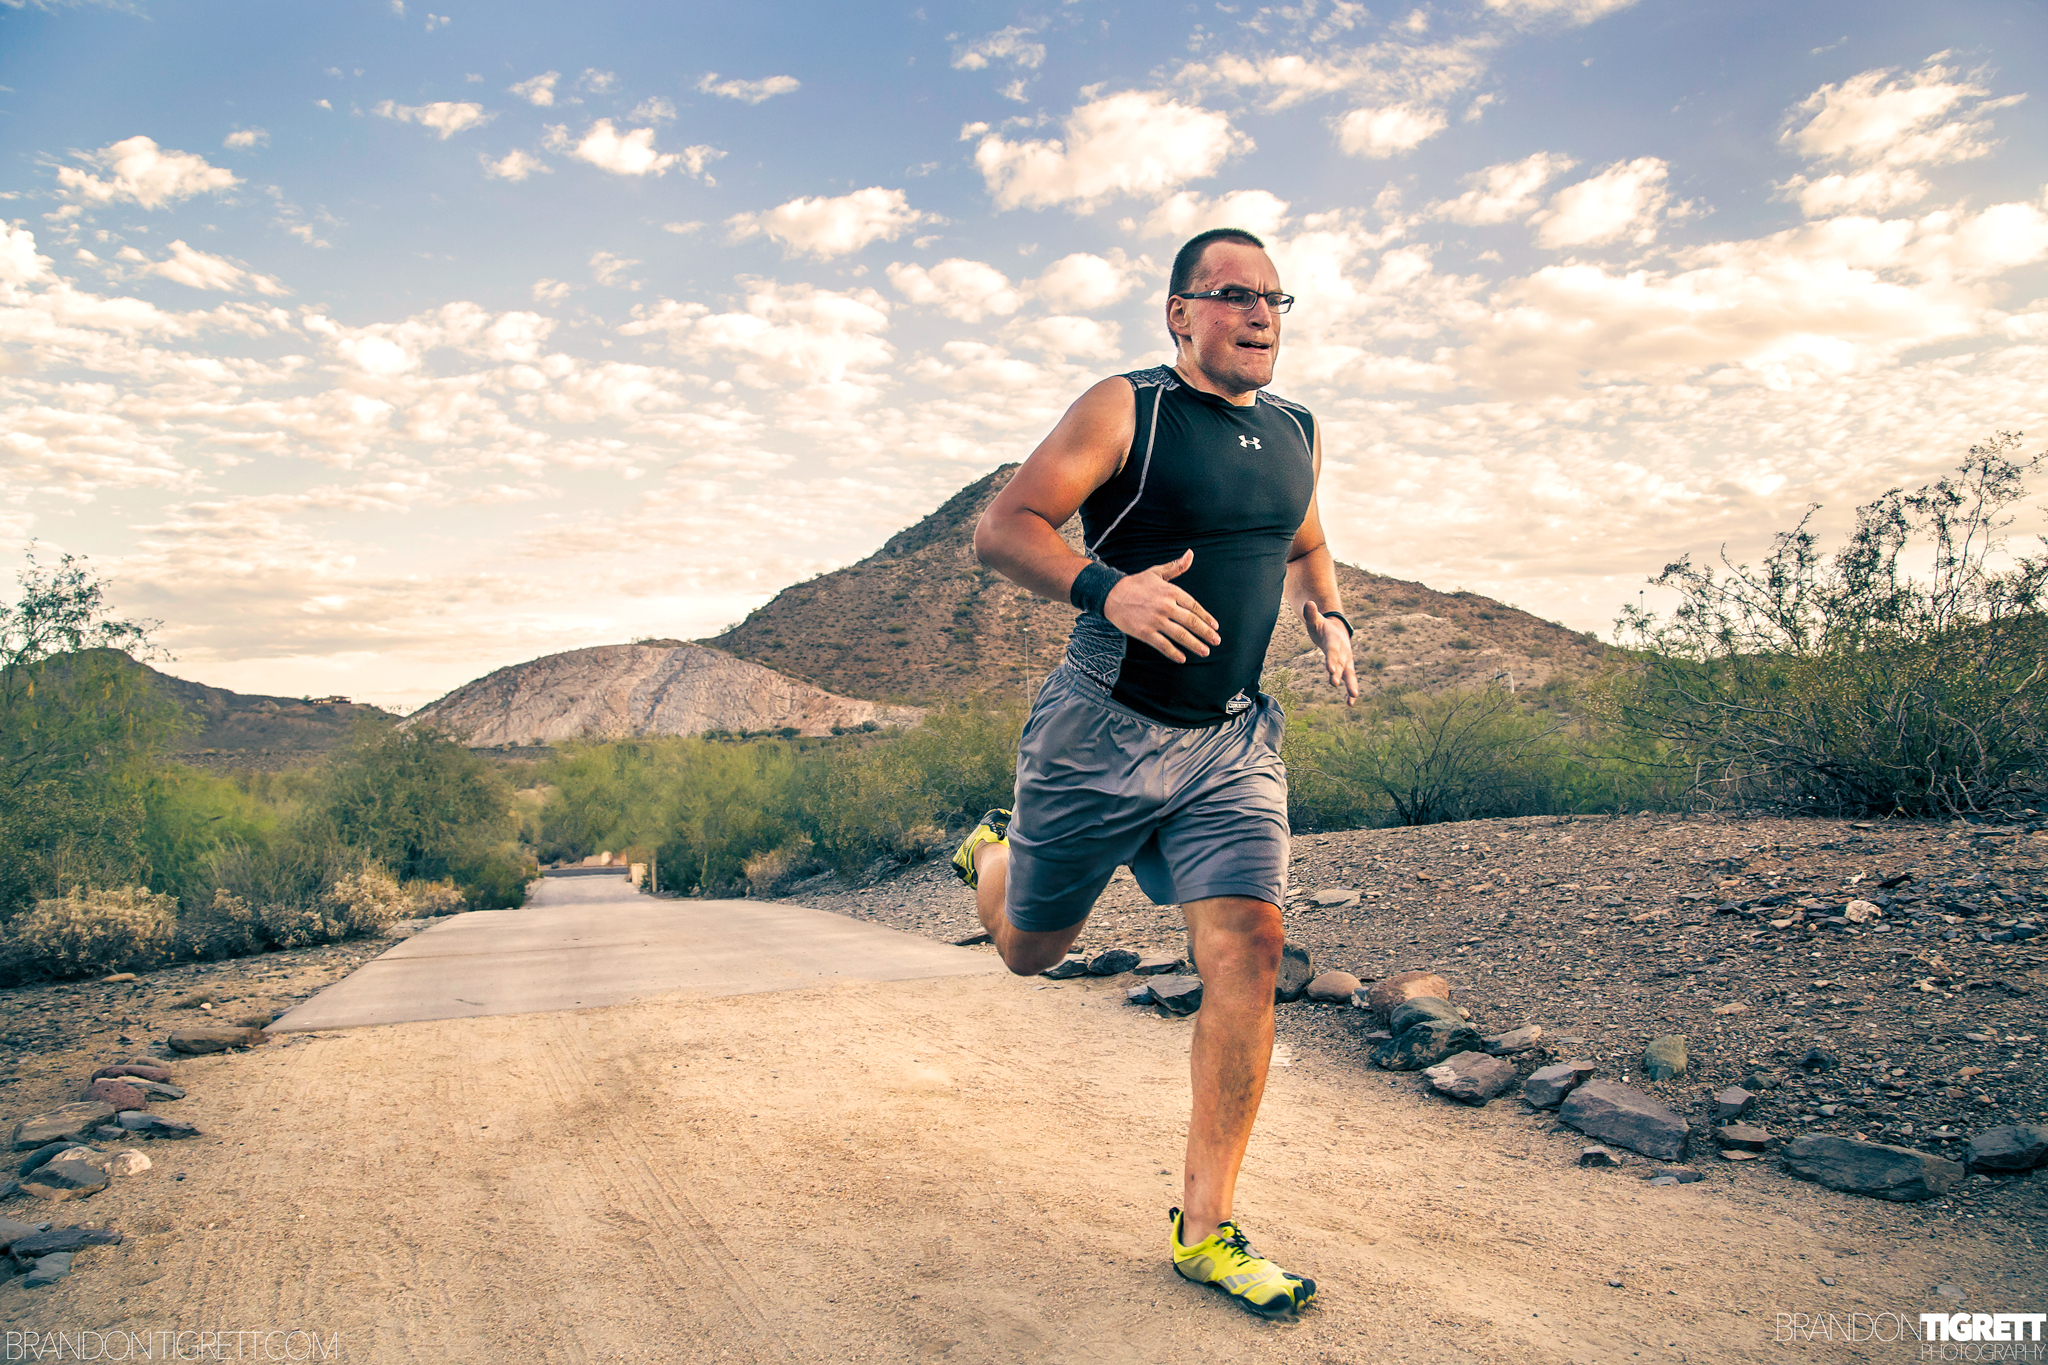 2014_Brandon-Tigrett_Scottsdale_Fitness_PHX-Adventure-Bootcamp-242_Retouched_WEB_Facebook.jpg